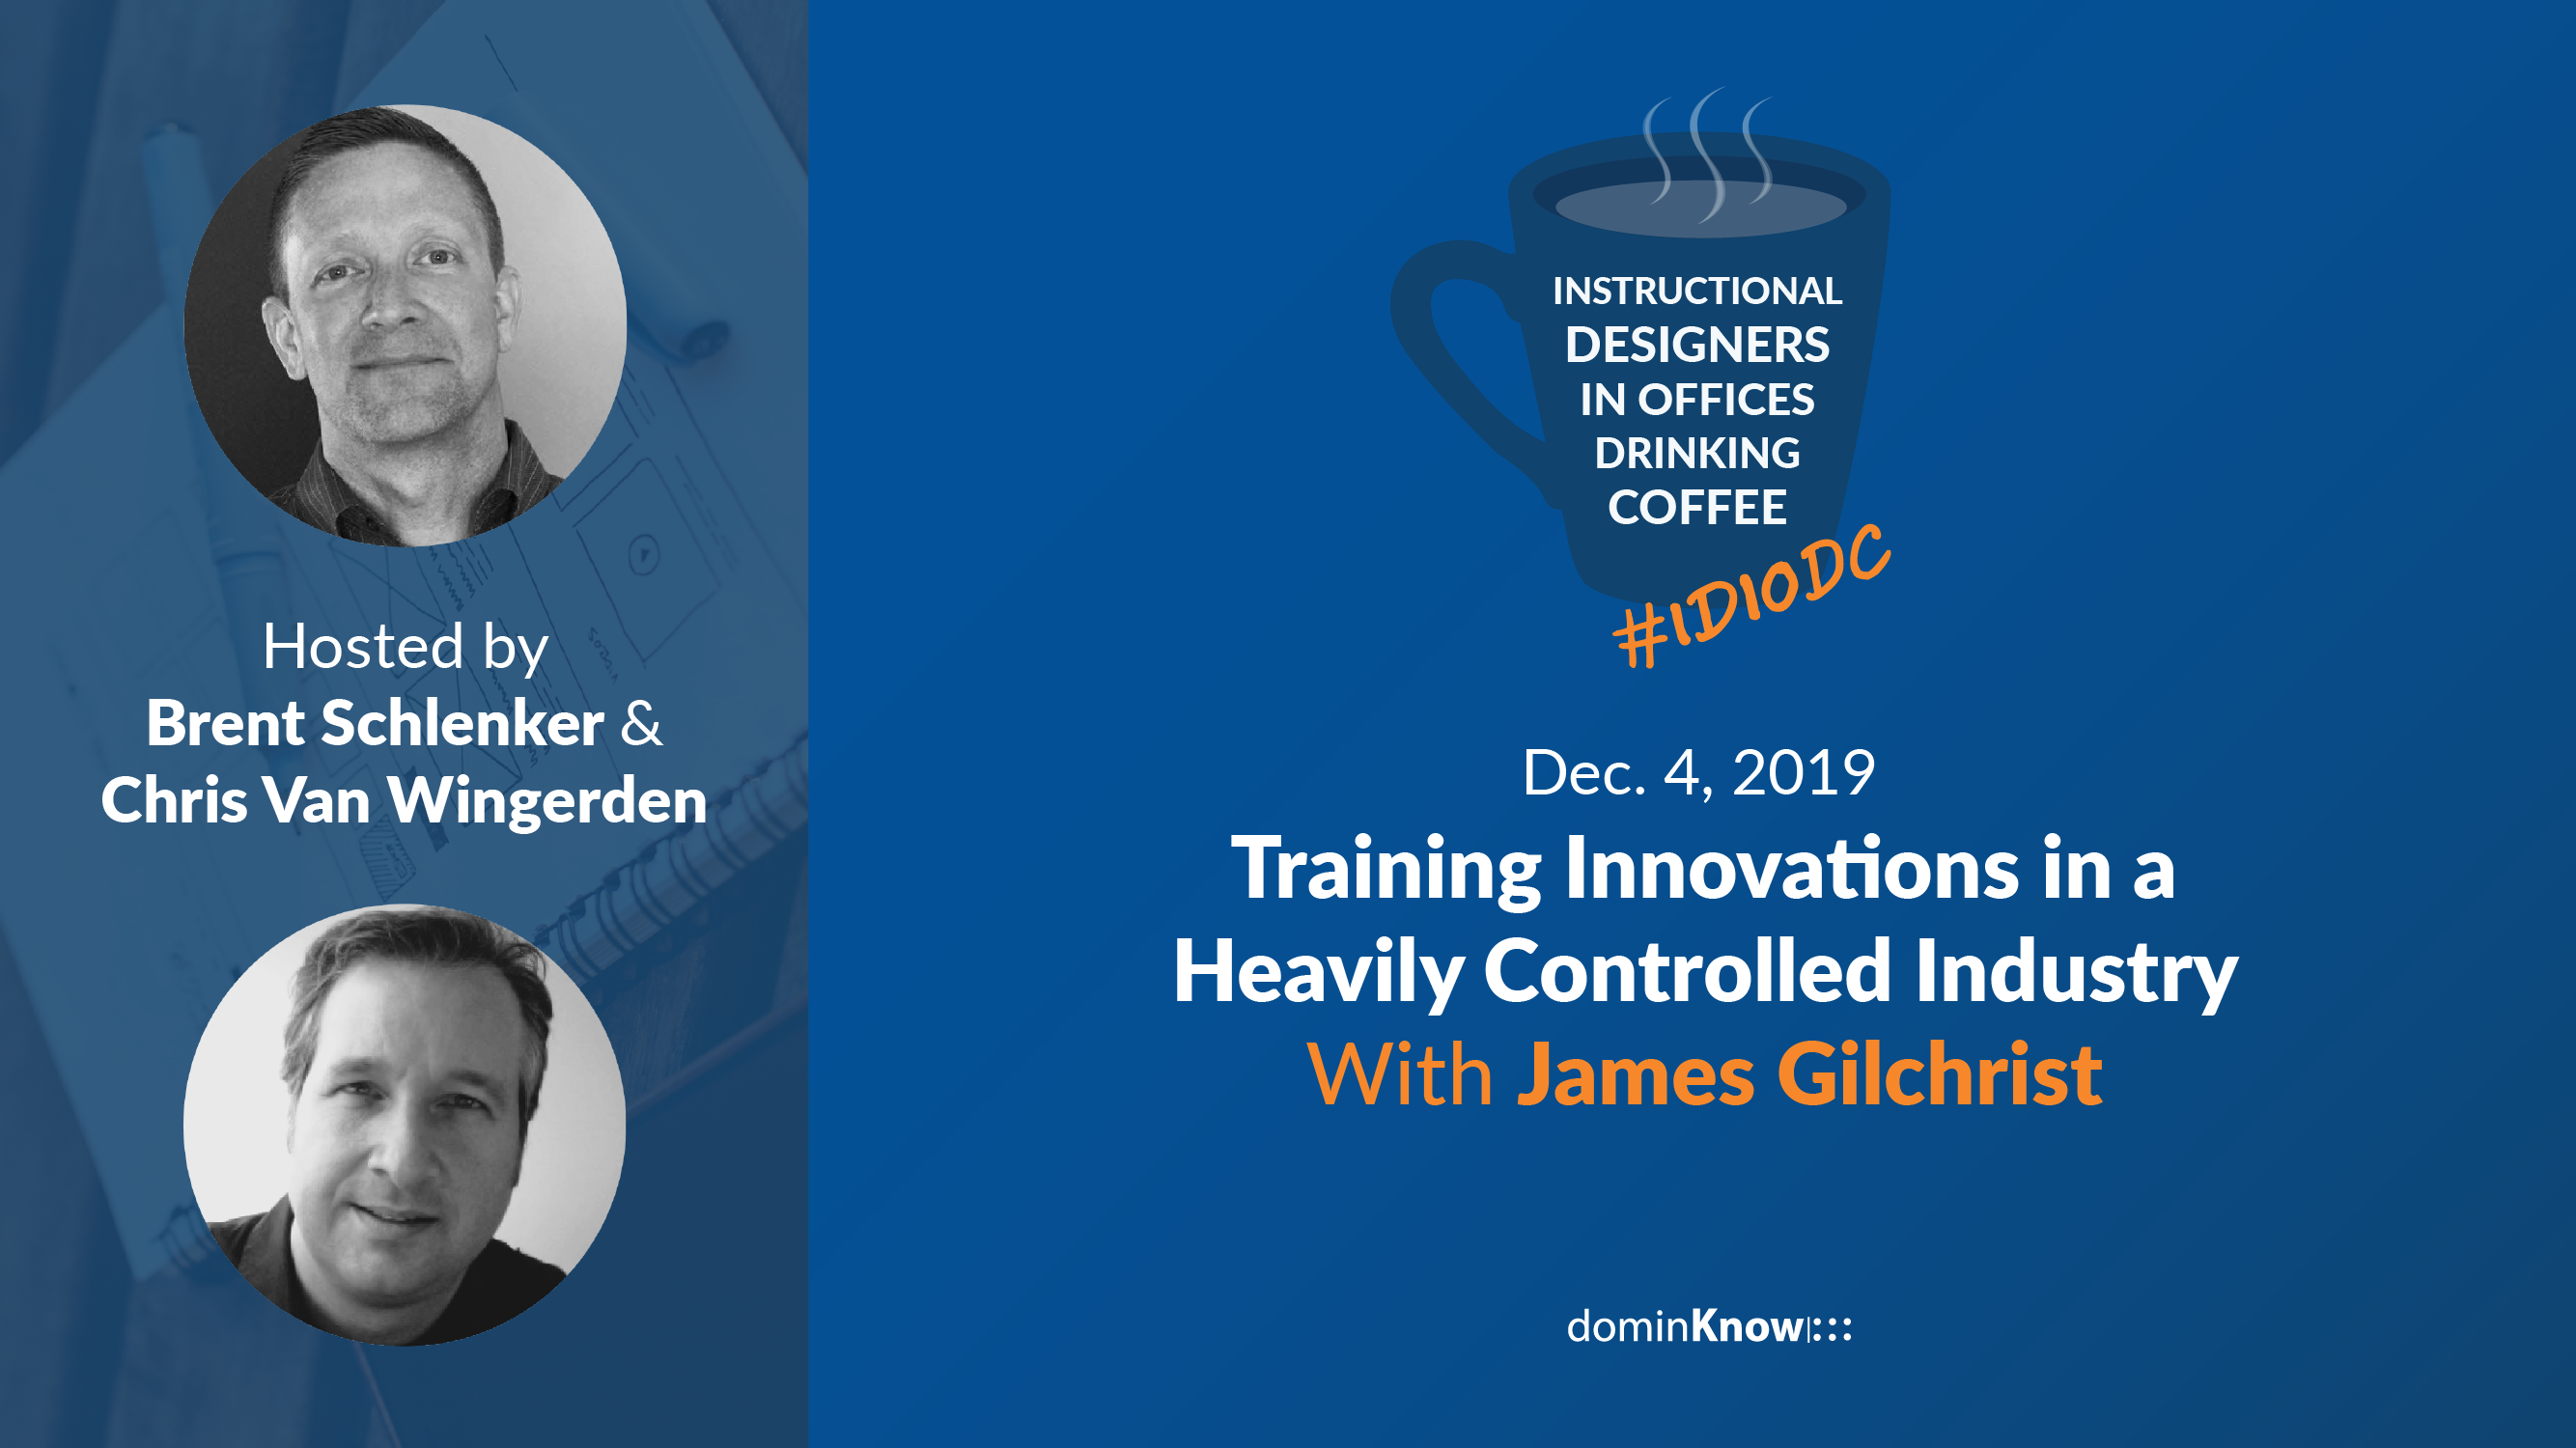 IDIODC with Brent Schlenker, Chris Van Wingerden and special guest James Gilchrist for a chat on training innovations in highly regulated industries.